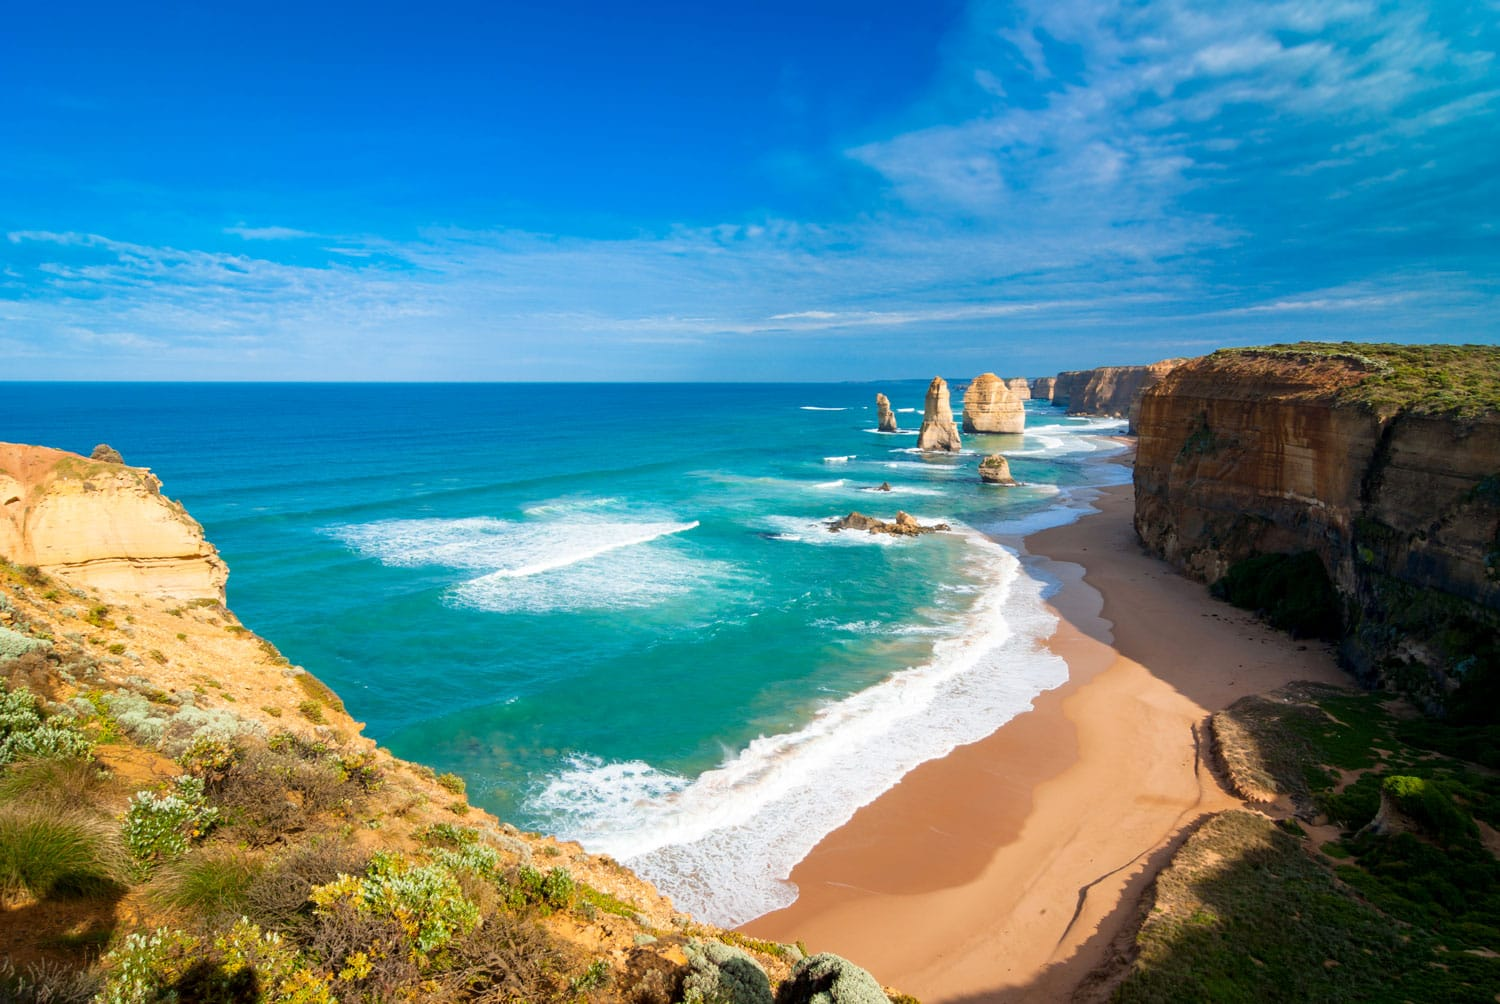 View of the Twelve Apostles along the Great Ocean Road in Victoria, Australia